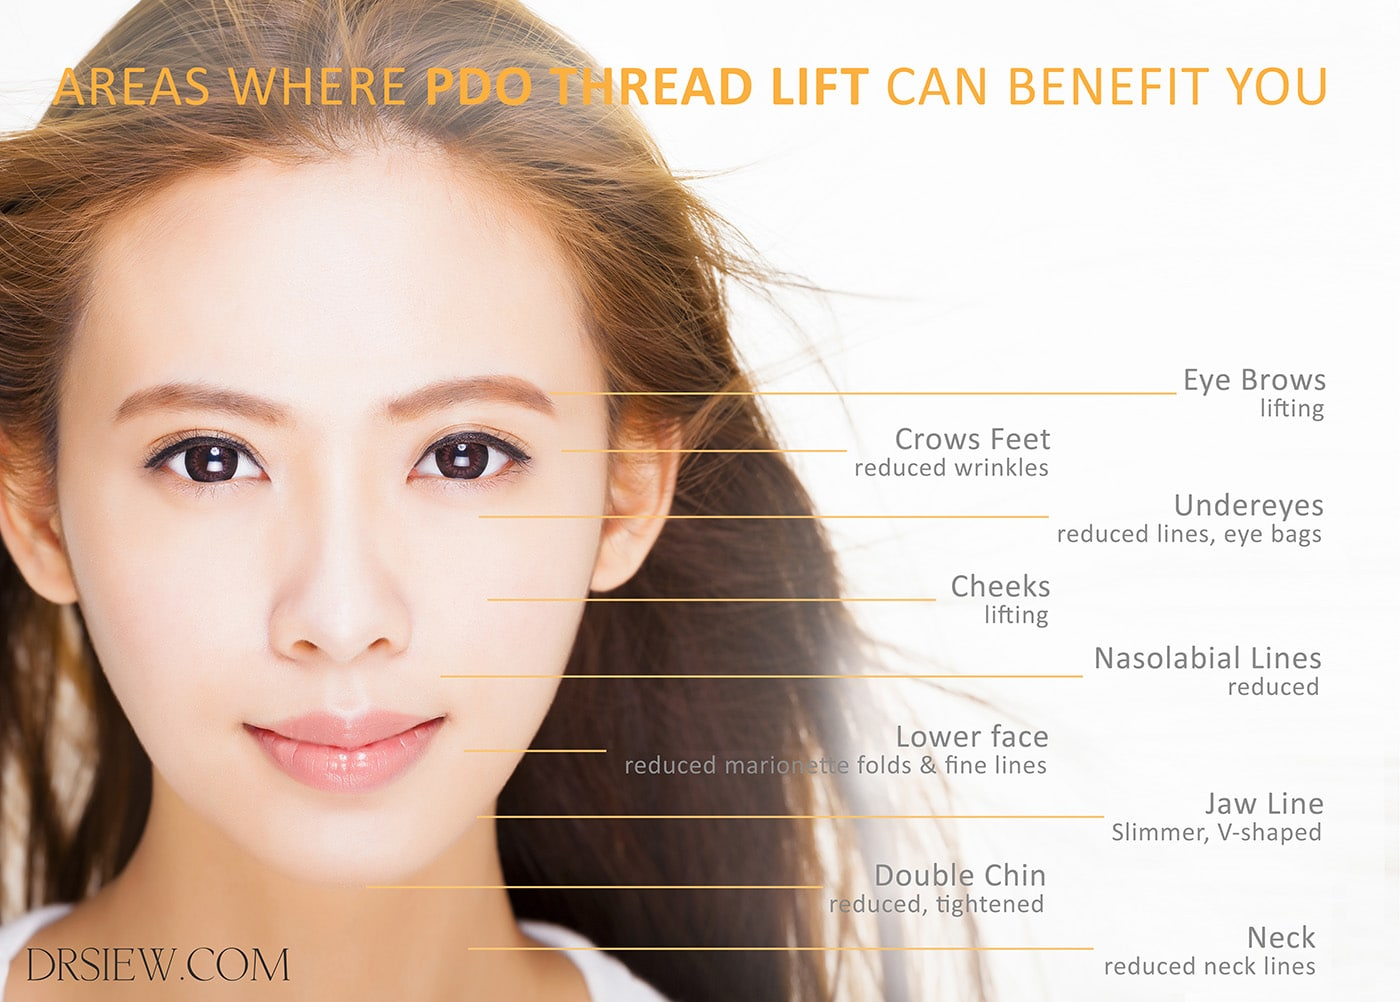 Areas where PDO Thread lift can benefit